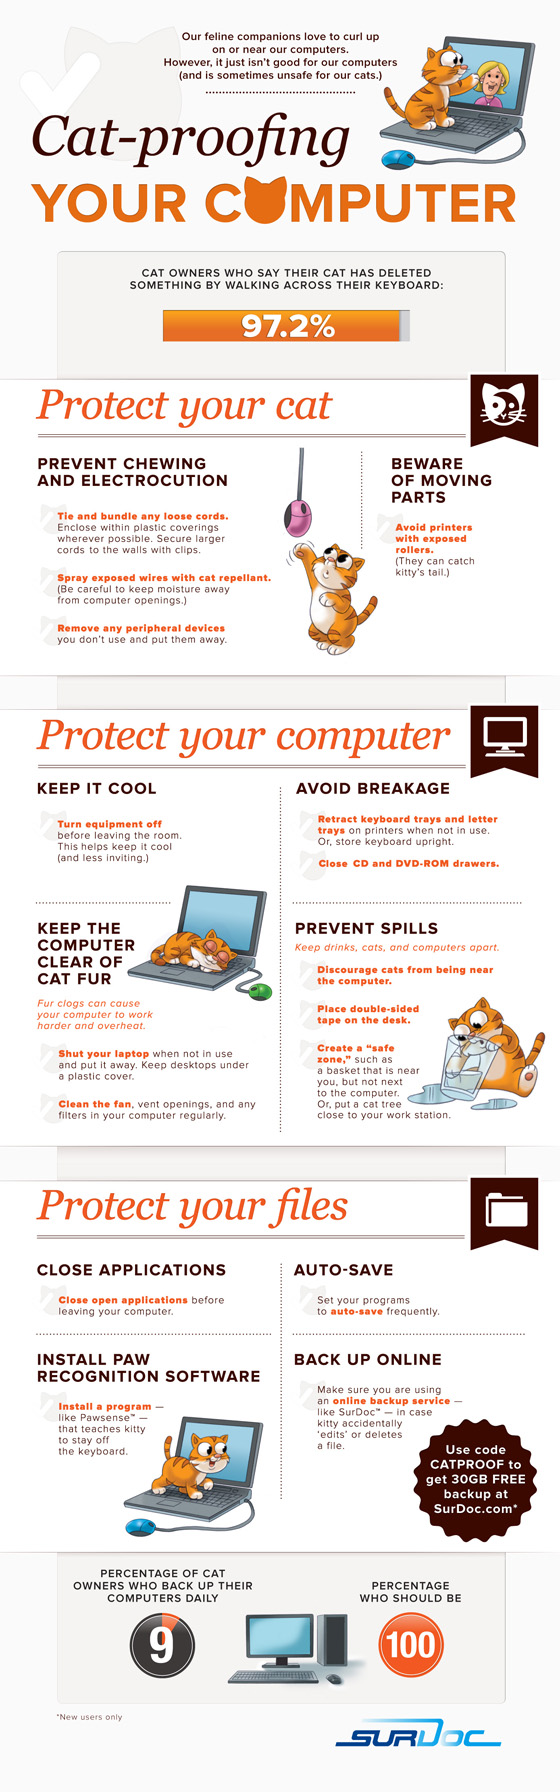 Cat Proof Your Computer infographic